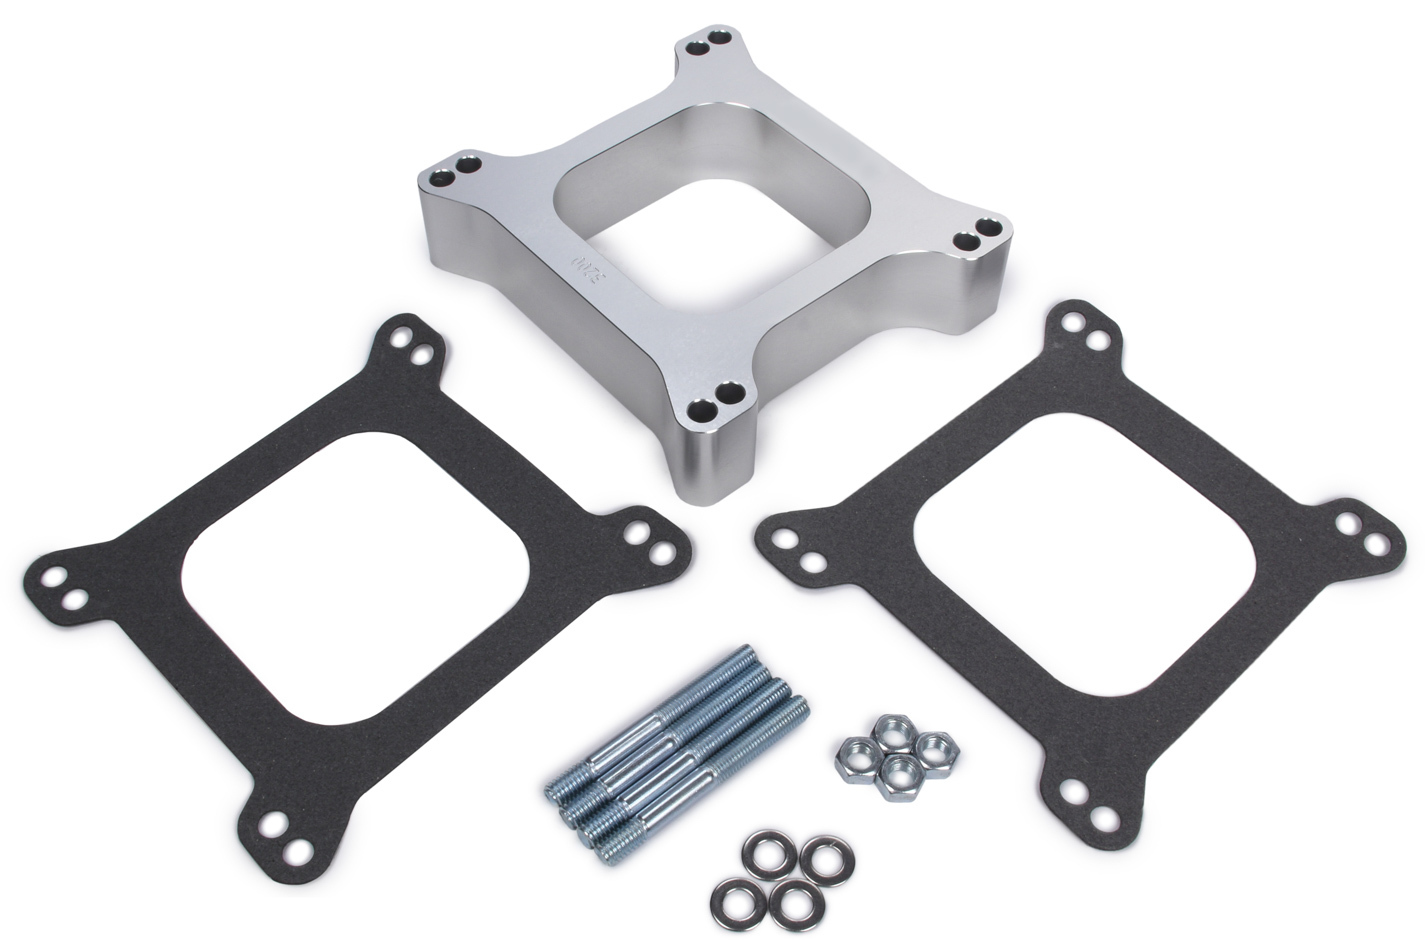 Trans Dapt 3200 Carburetor Spacer, 1-1/2 in Thick, Open, Holley 4-Barrel, Gasket / Hardware Included, Aluminum, Clear Anodize, Each